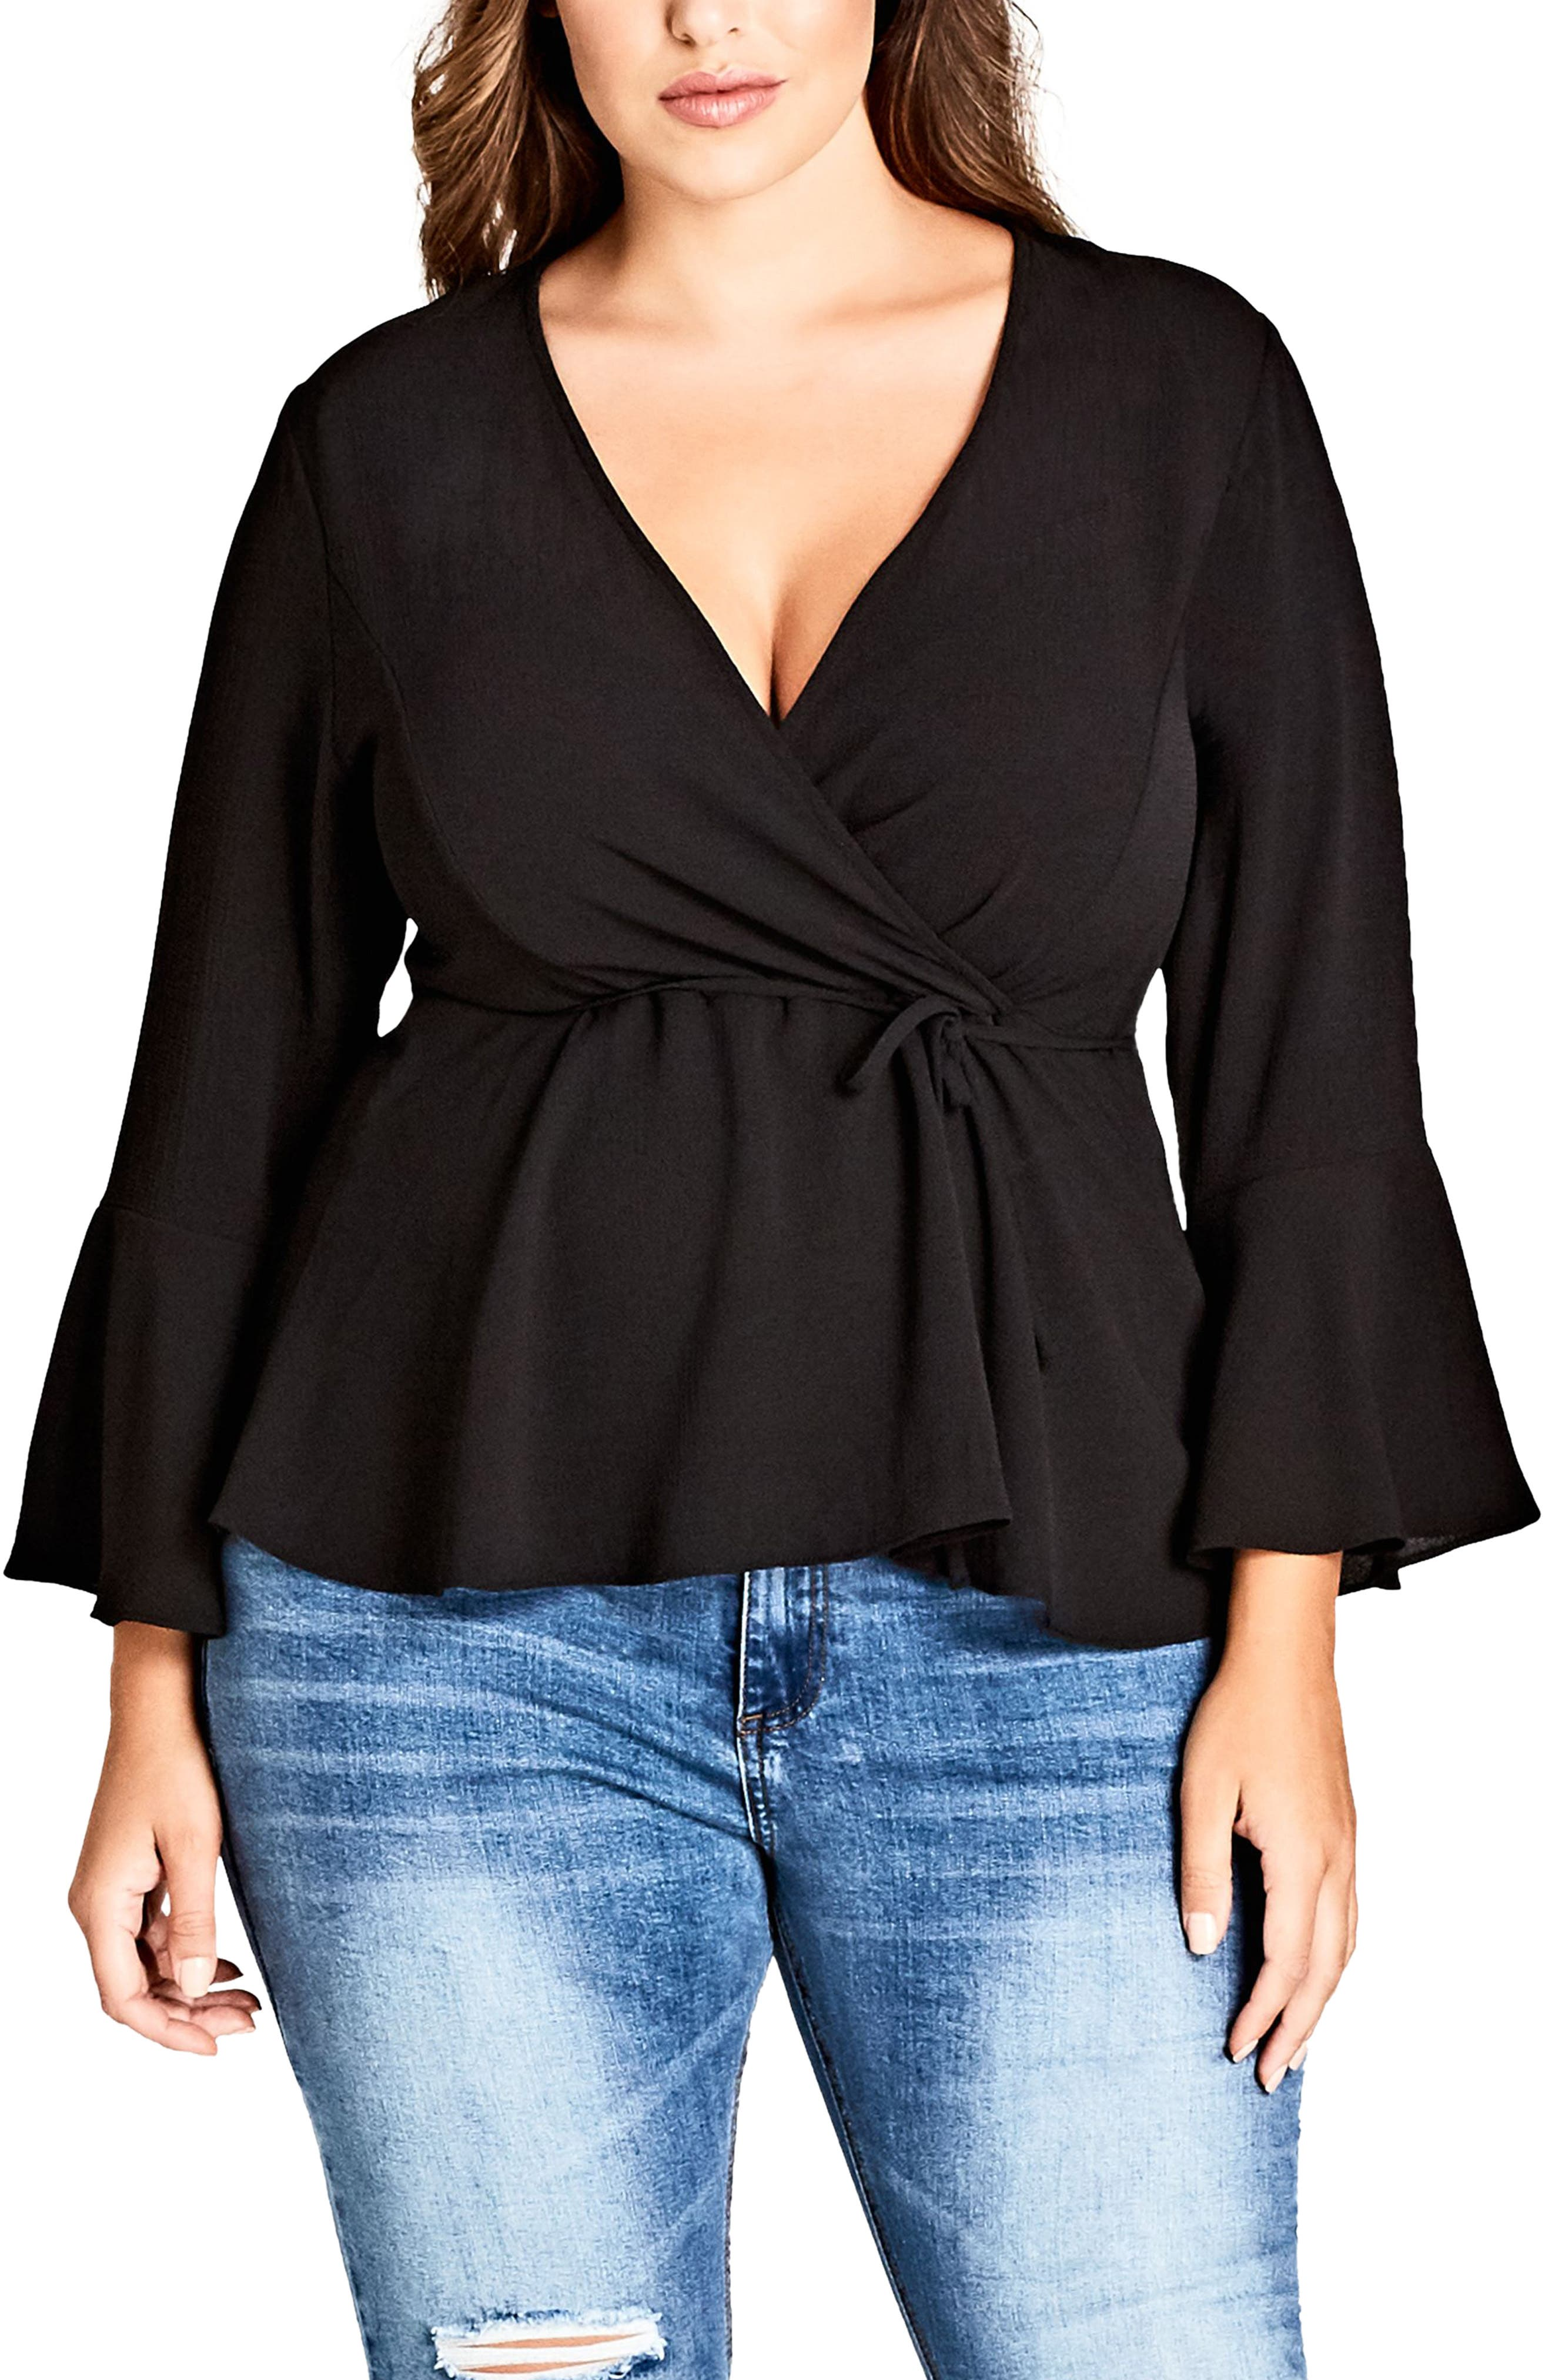 Sweetly Tied Top,                             Main thumbnail 1, color,                             BLACK